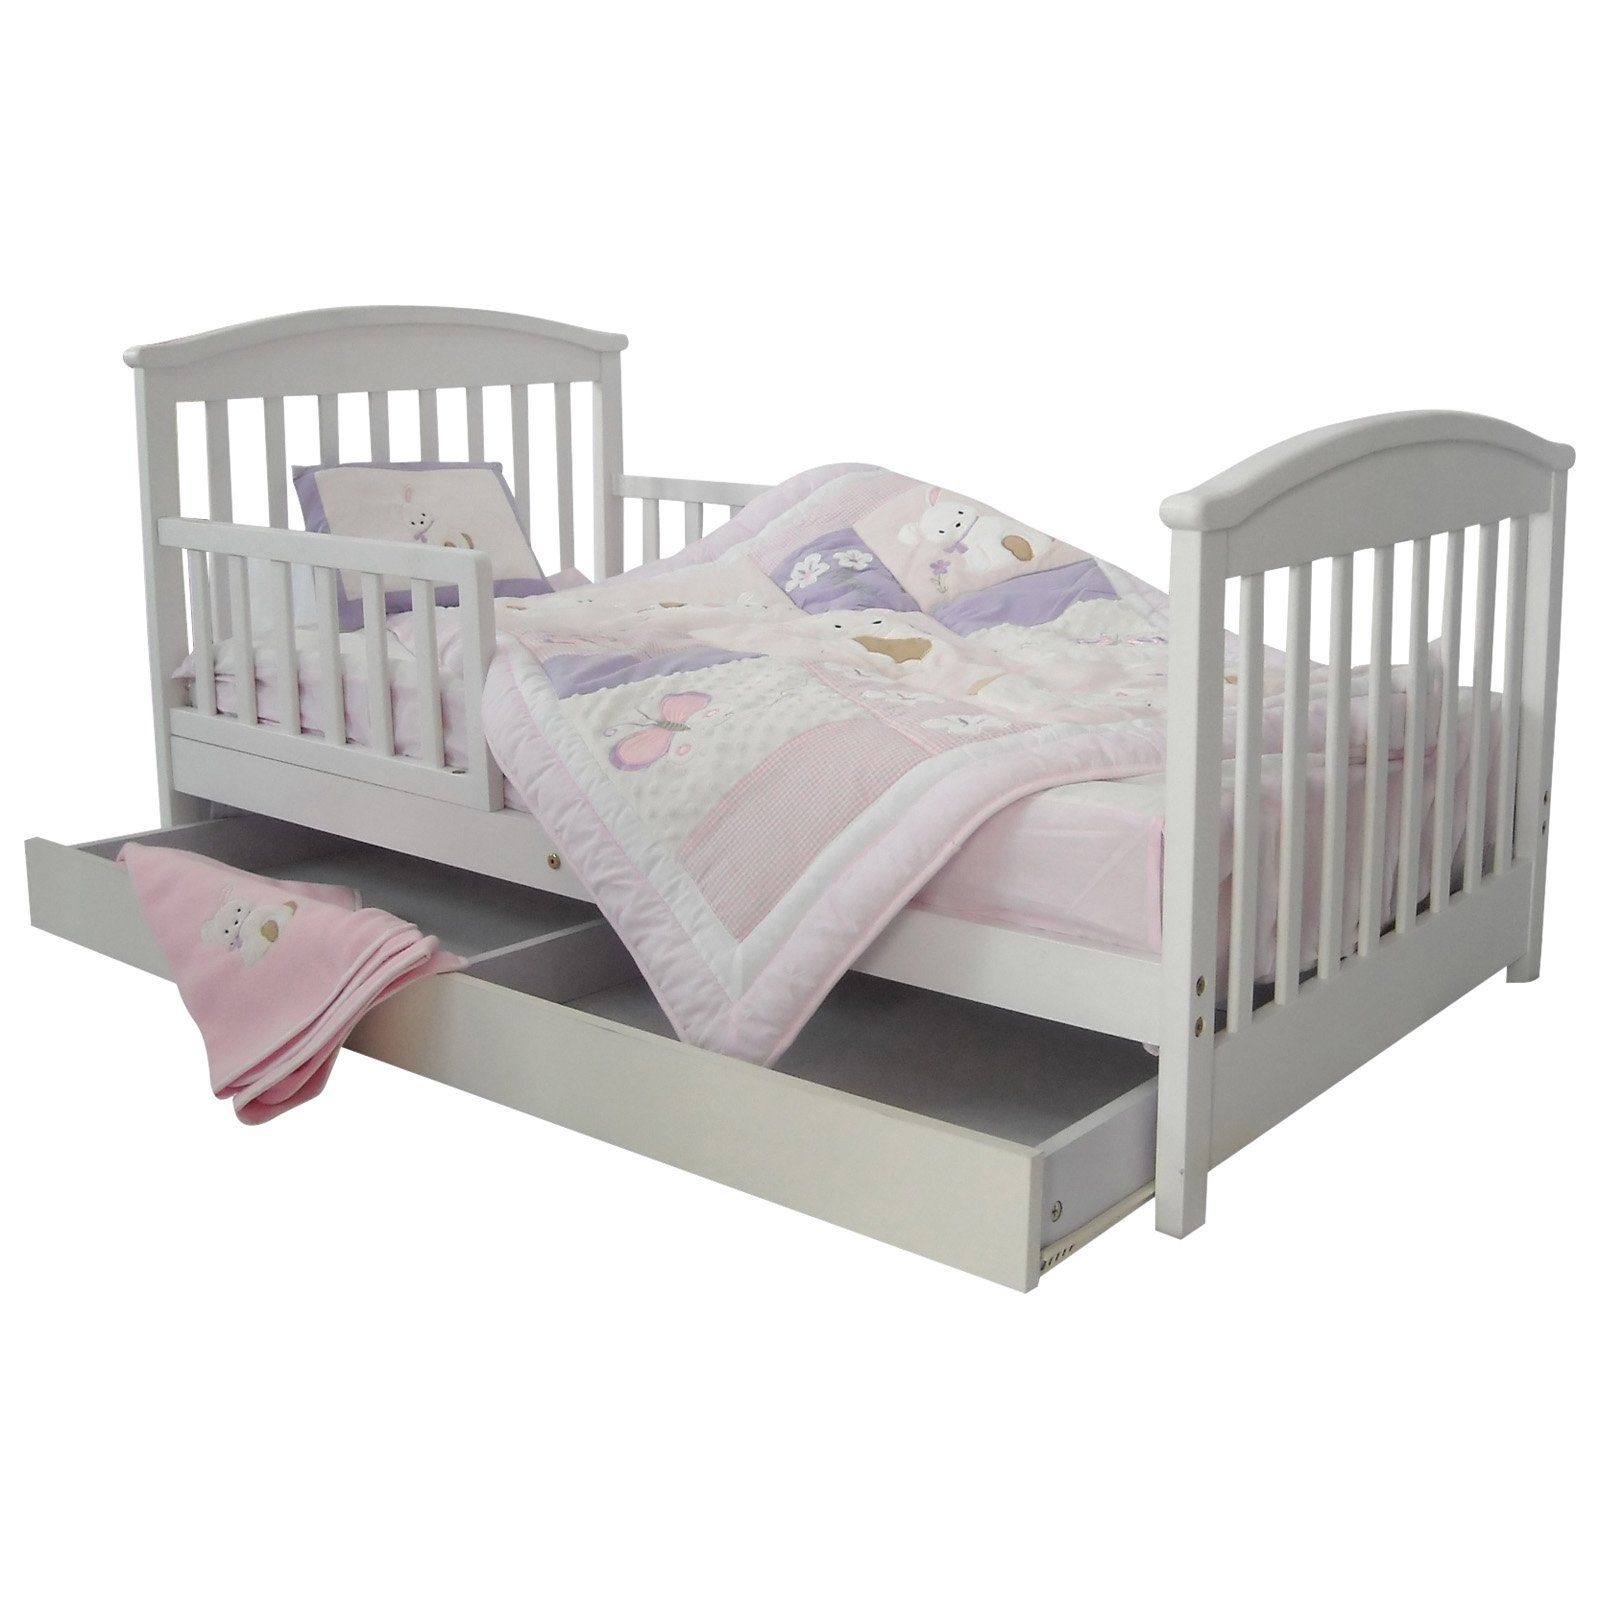 unique full for over twin bed as bunk drawers with ideas toddler drawer princess twins throughout proportions beds on x